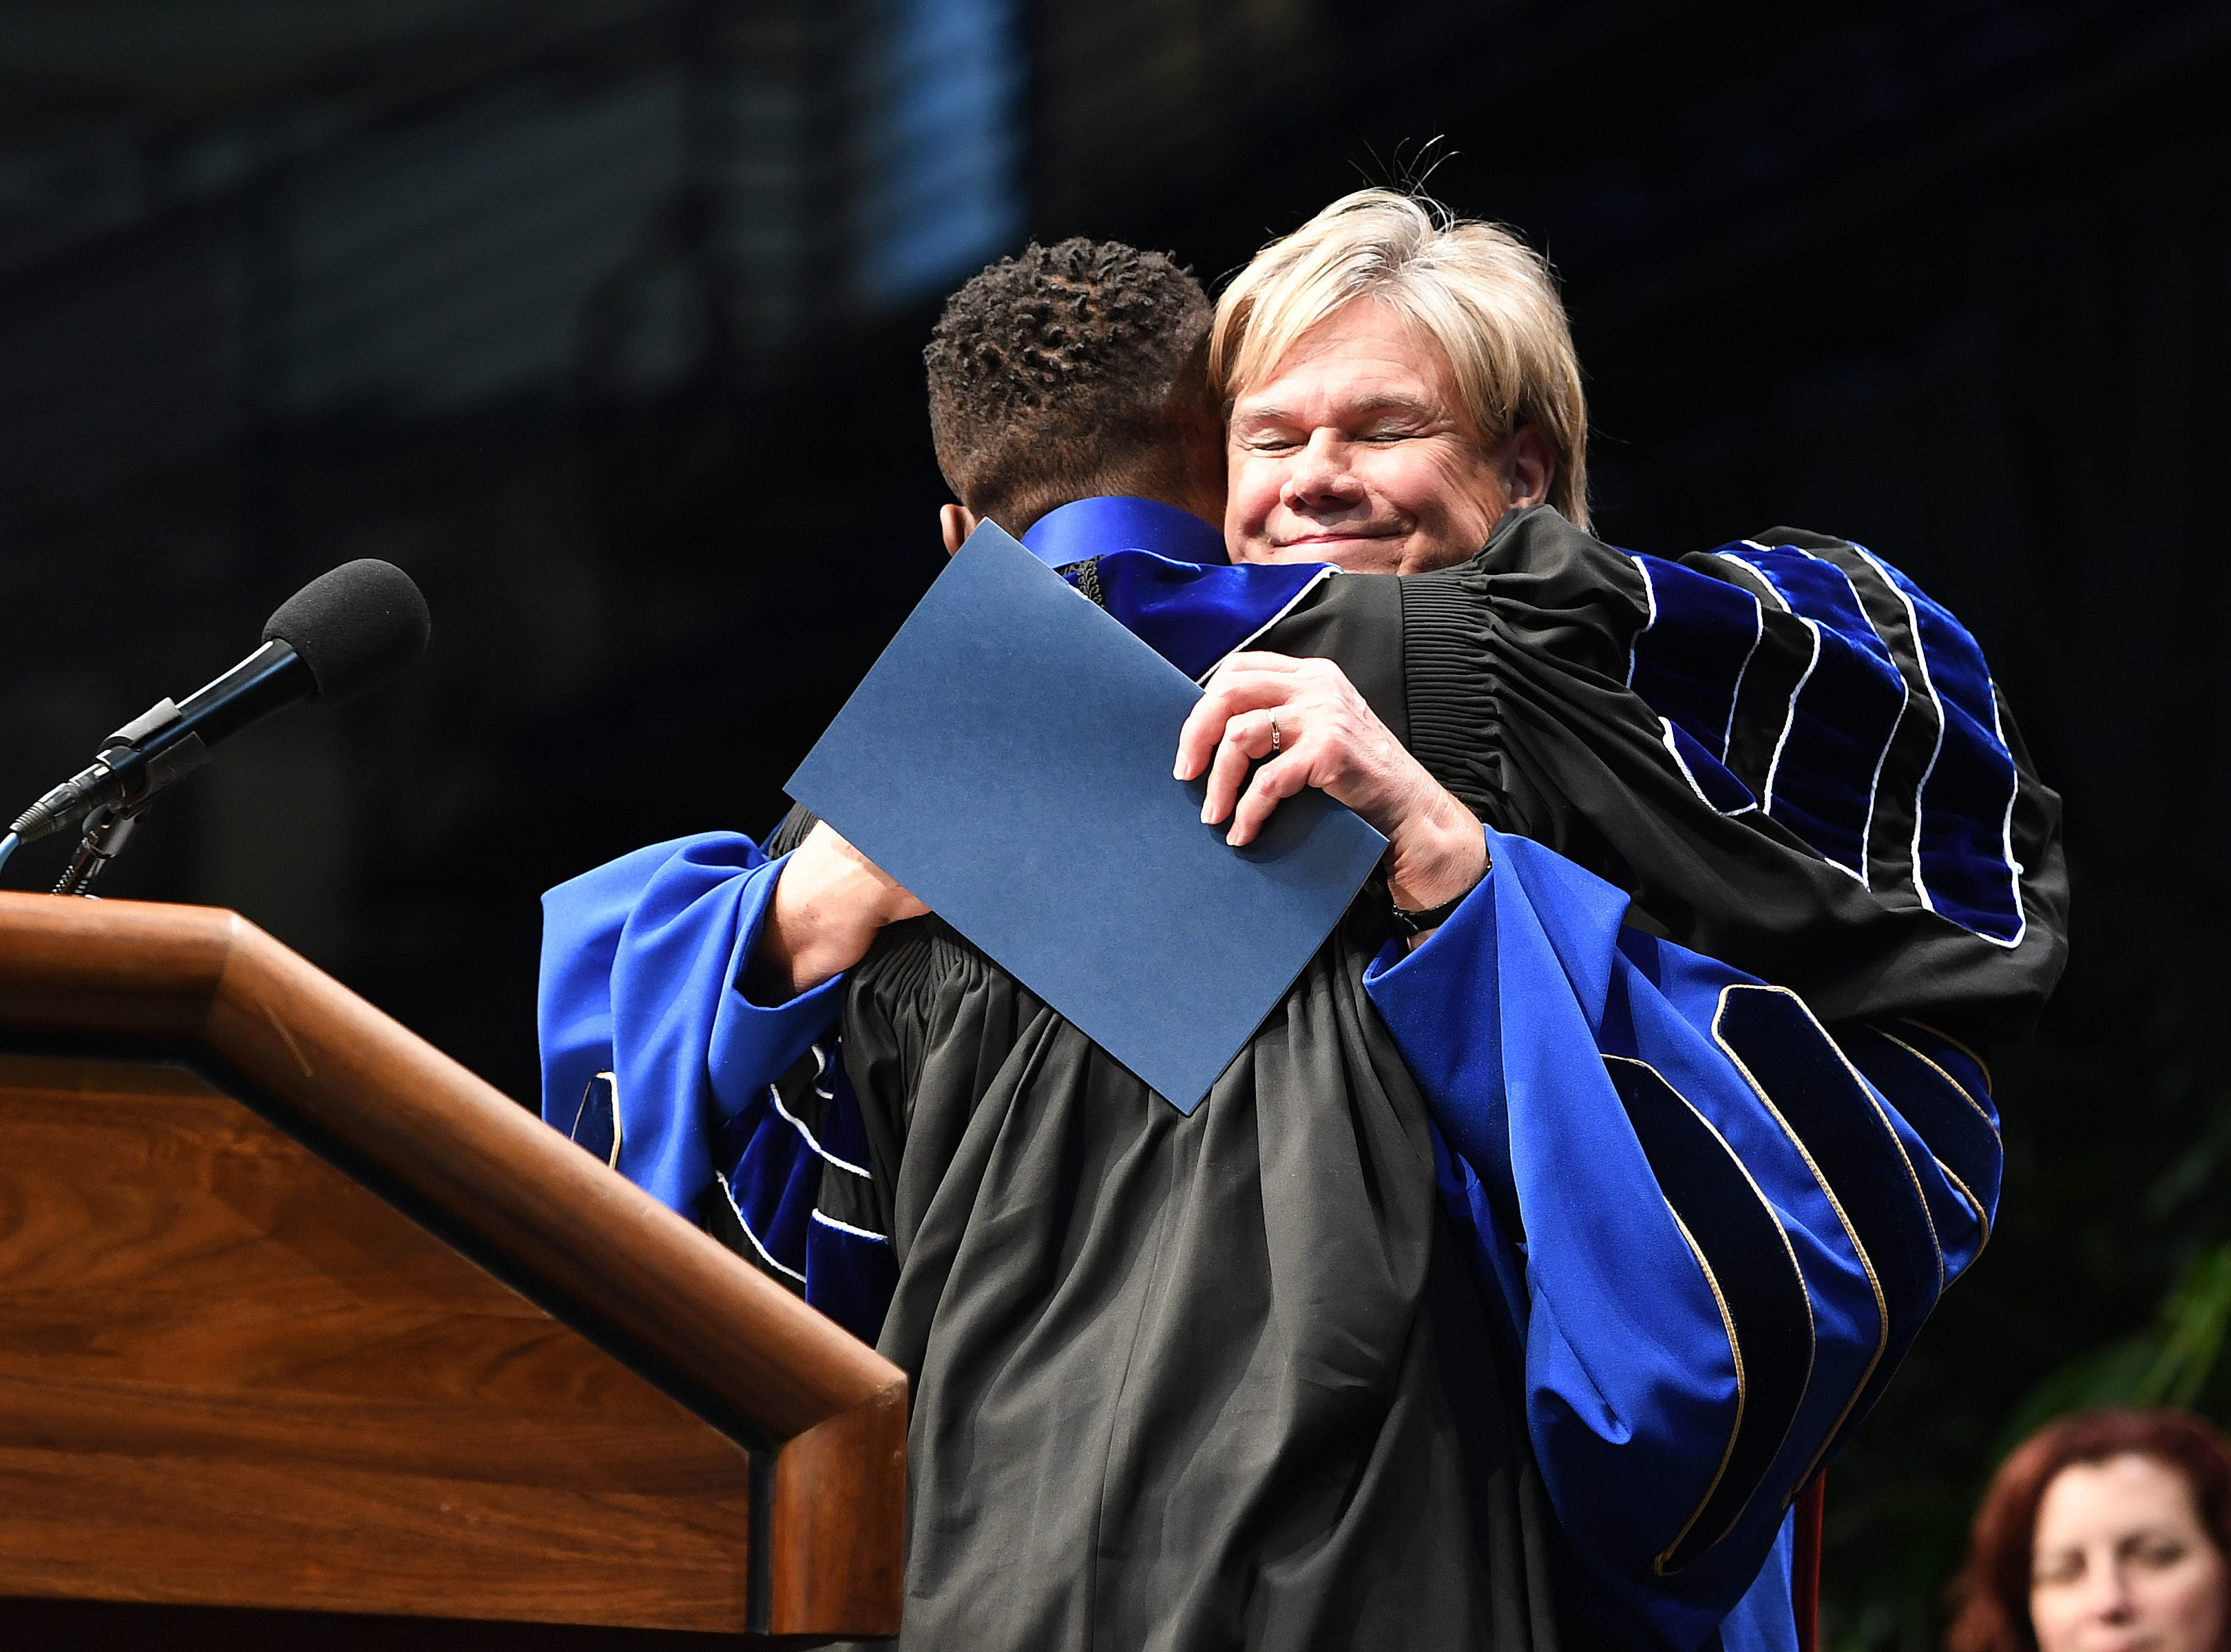 UNC Asheville chancellor Nancy J. Cable hugs student speaker and Student Government Association president Michael Davis as he approaches the podium during the winter commencement ceremony at Kimmel Arena on Dec. 14, 2018.